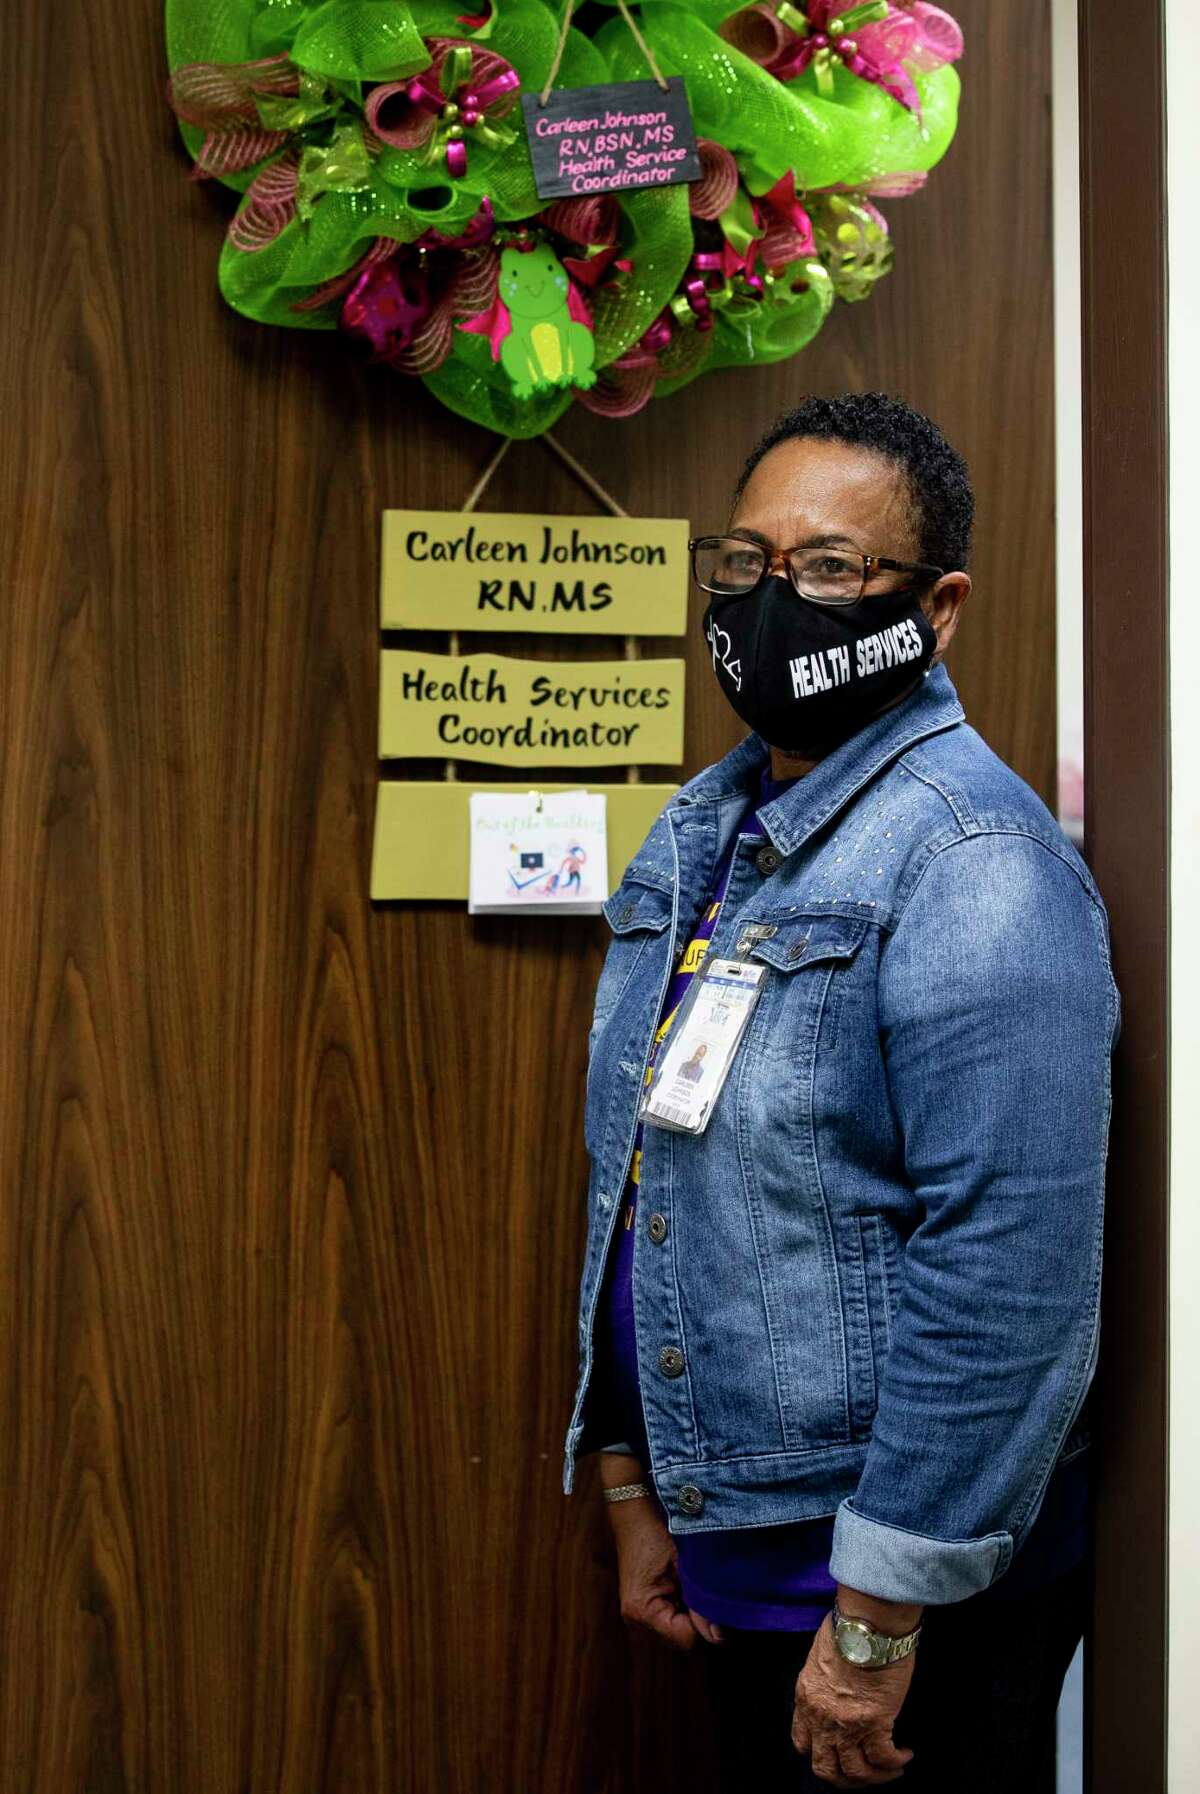 Carleen Johnson, R.N., Health Services Coordinator for Alief Independent School District, poses for a photograph inside her office Thursday, July 9, 2020, in Houston.